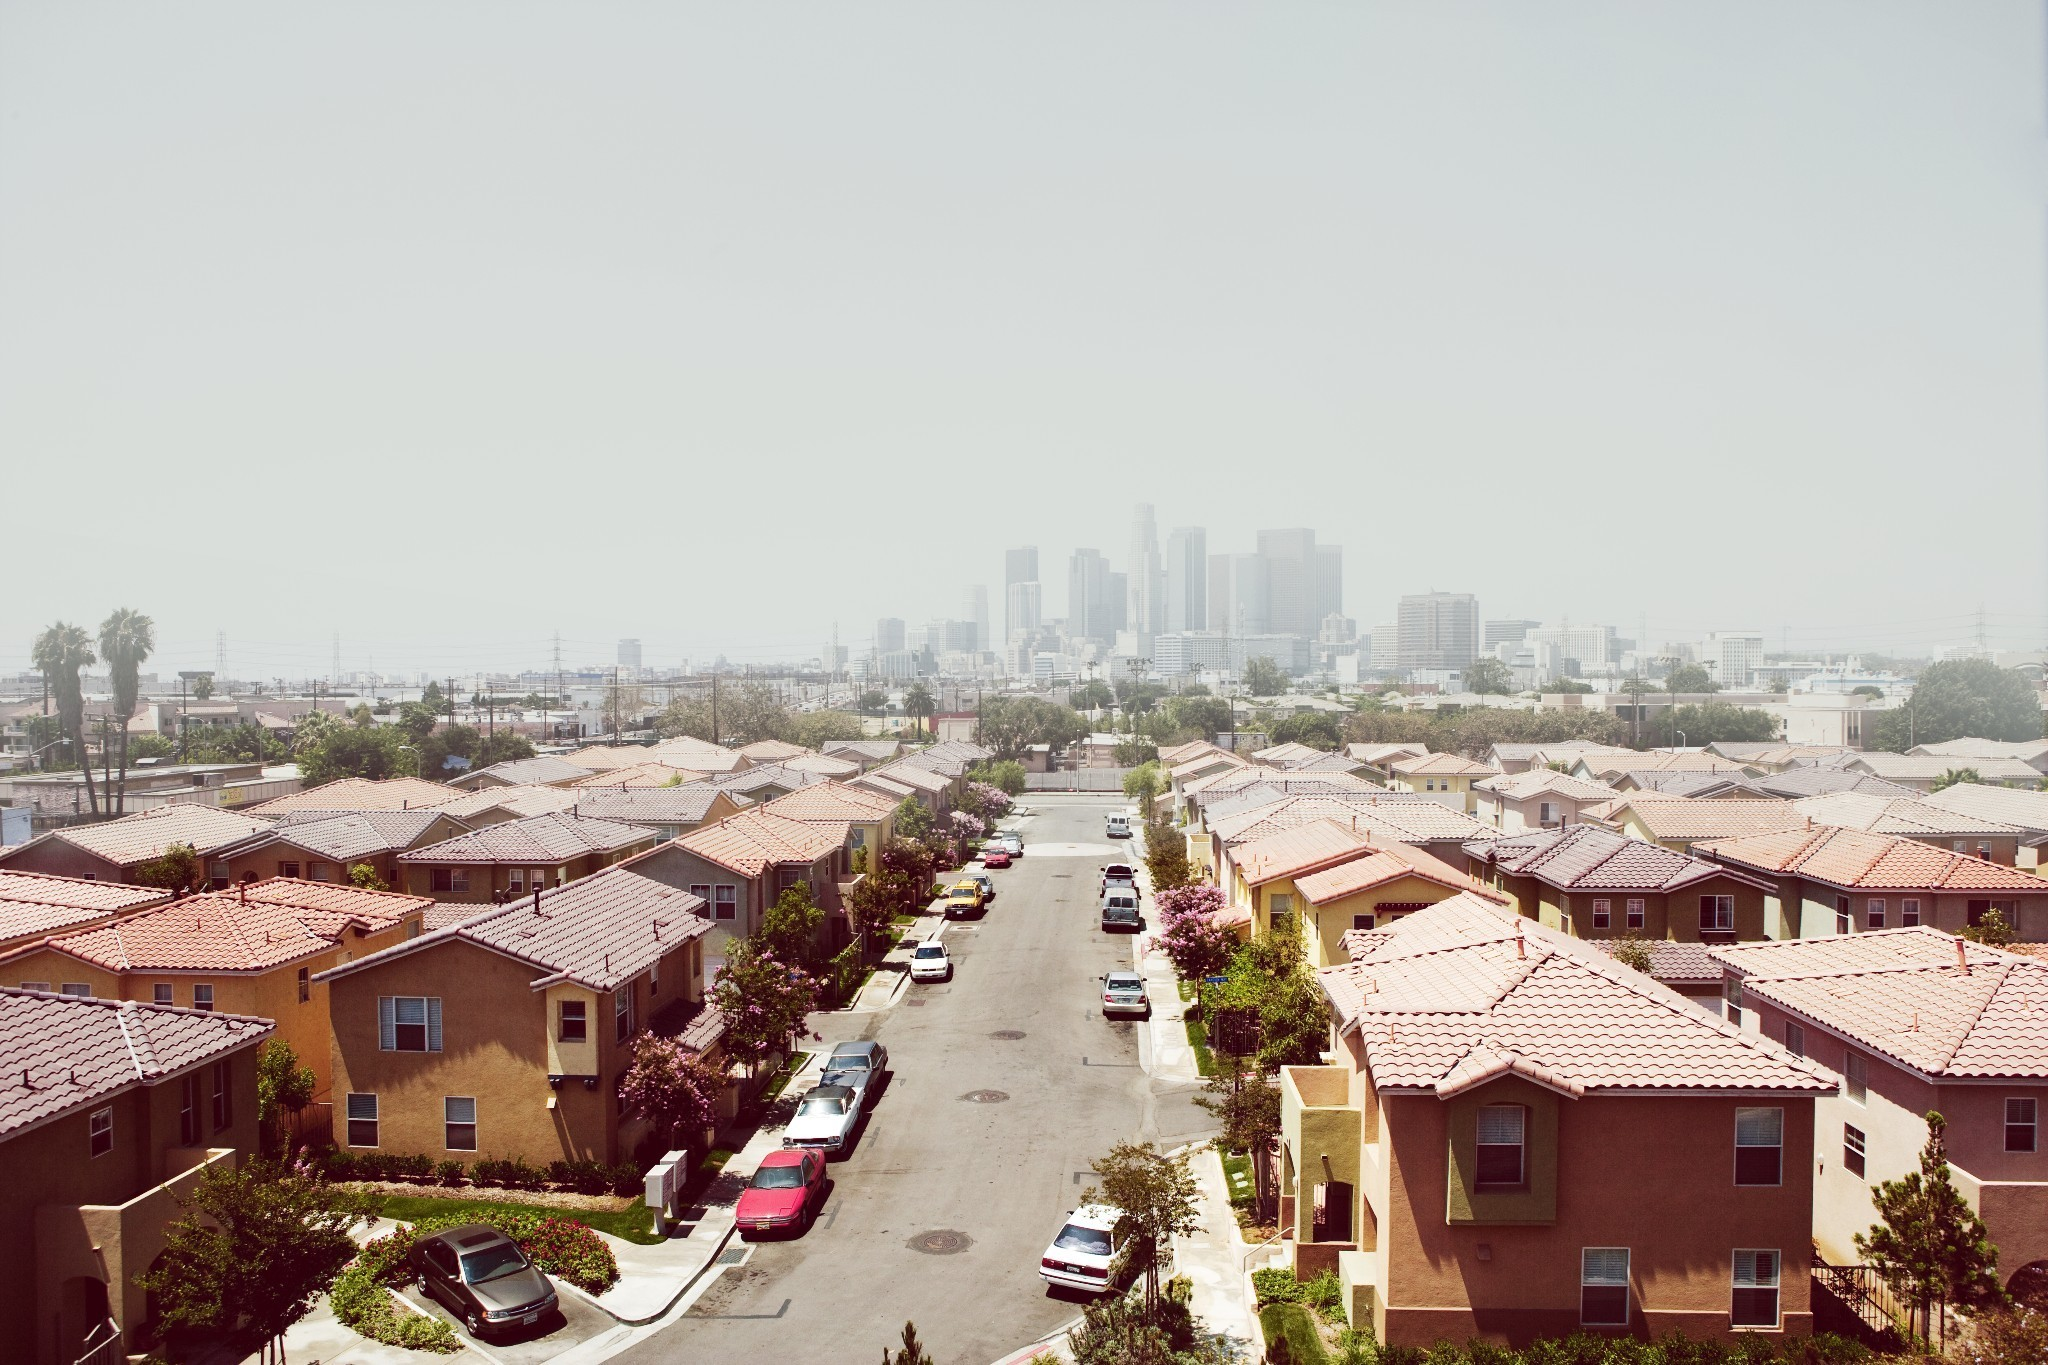 What to know about gentrification before buying a house in LA